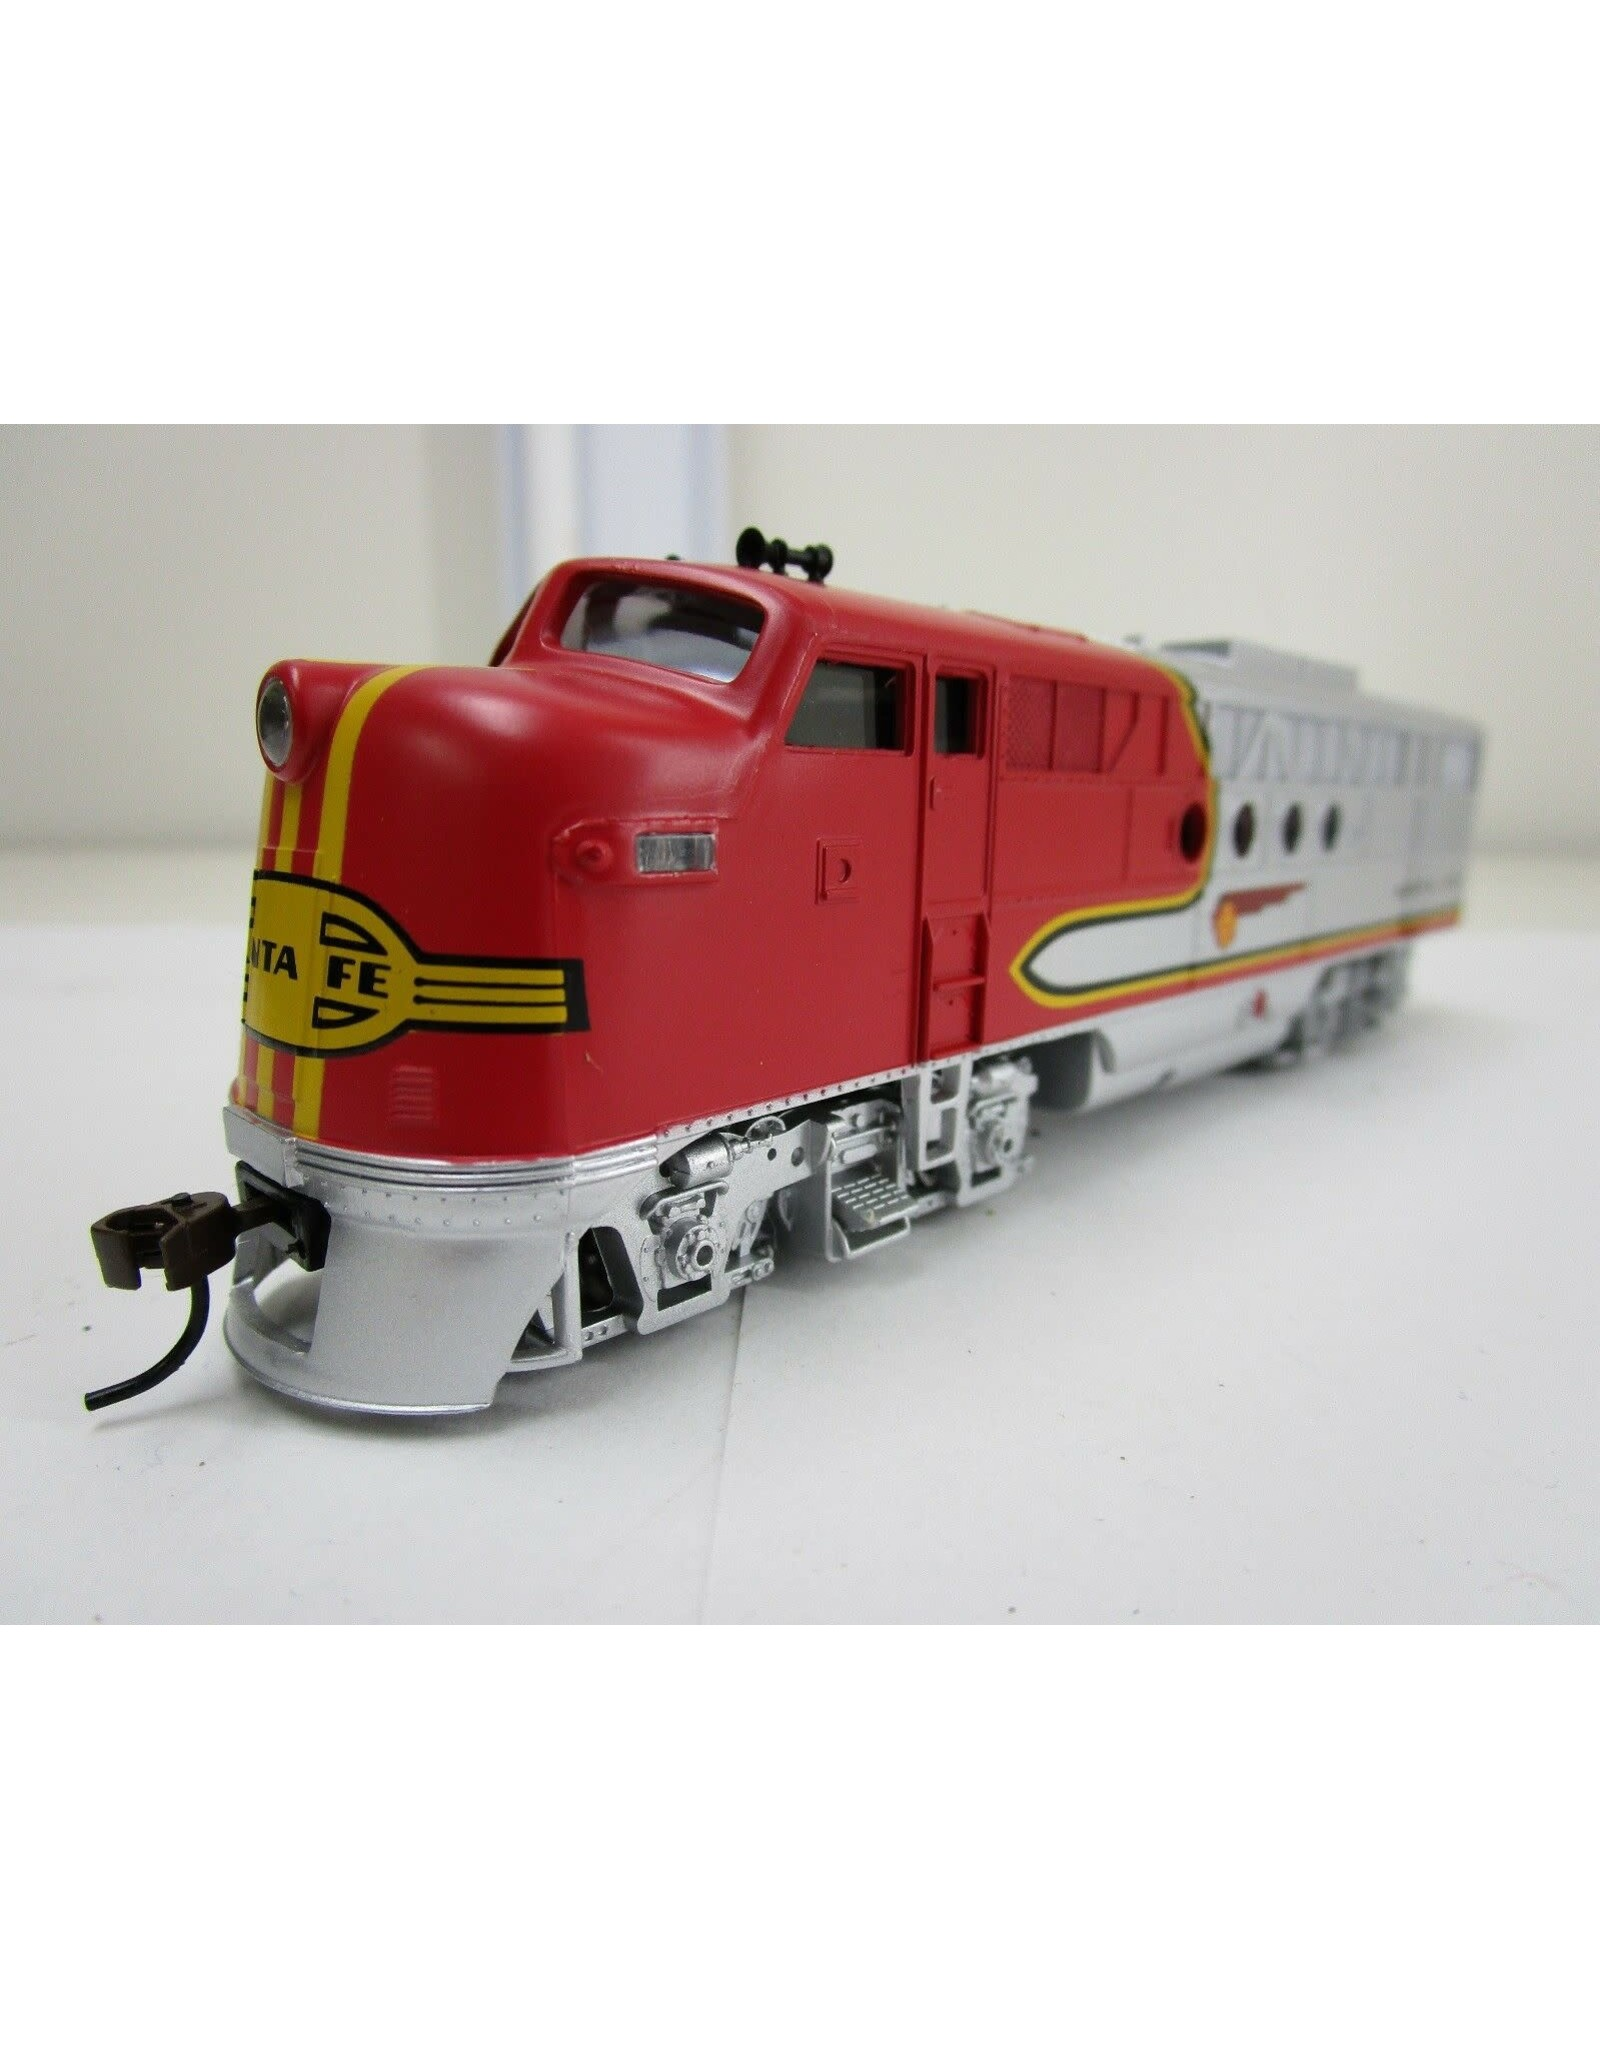 Bachmann Bachmann HO Scale Locomotive Train Diesel Santa Fe Flyer DCC On Board